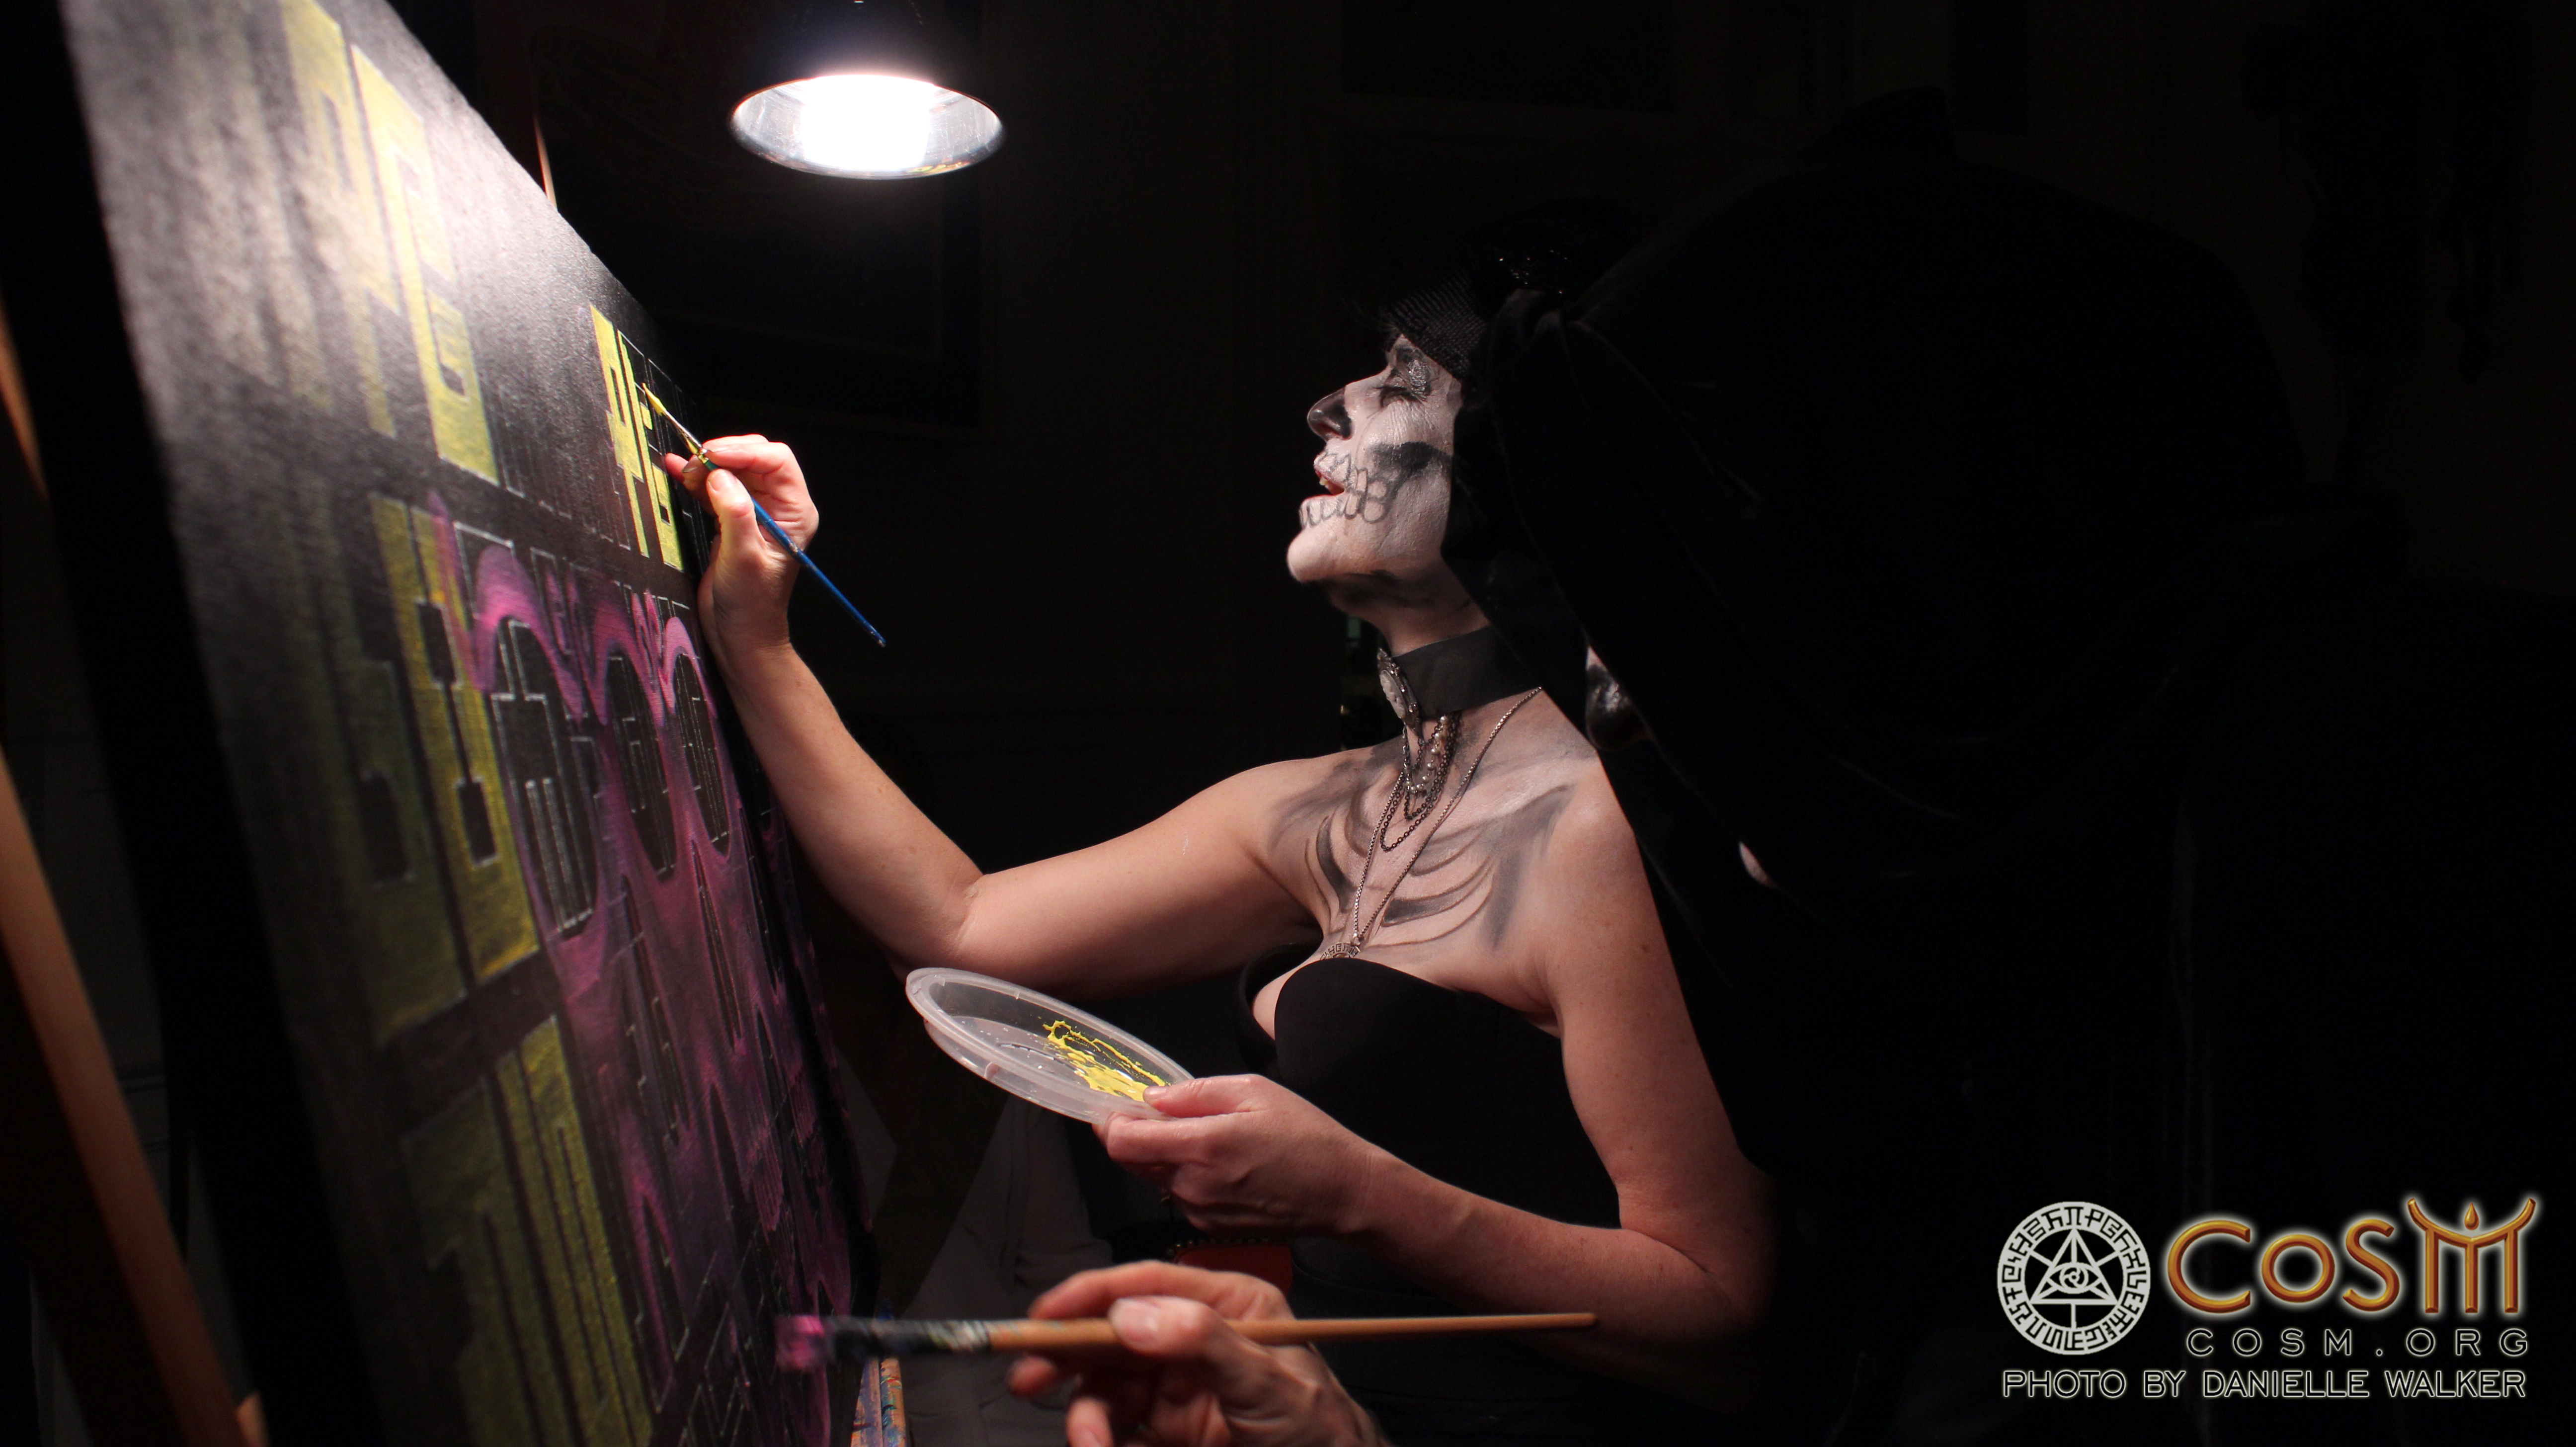 allyson live painting demons and deities